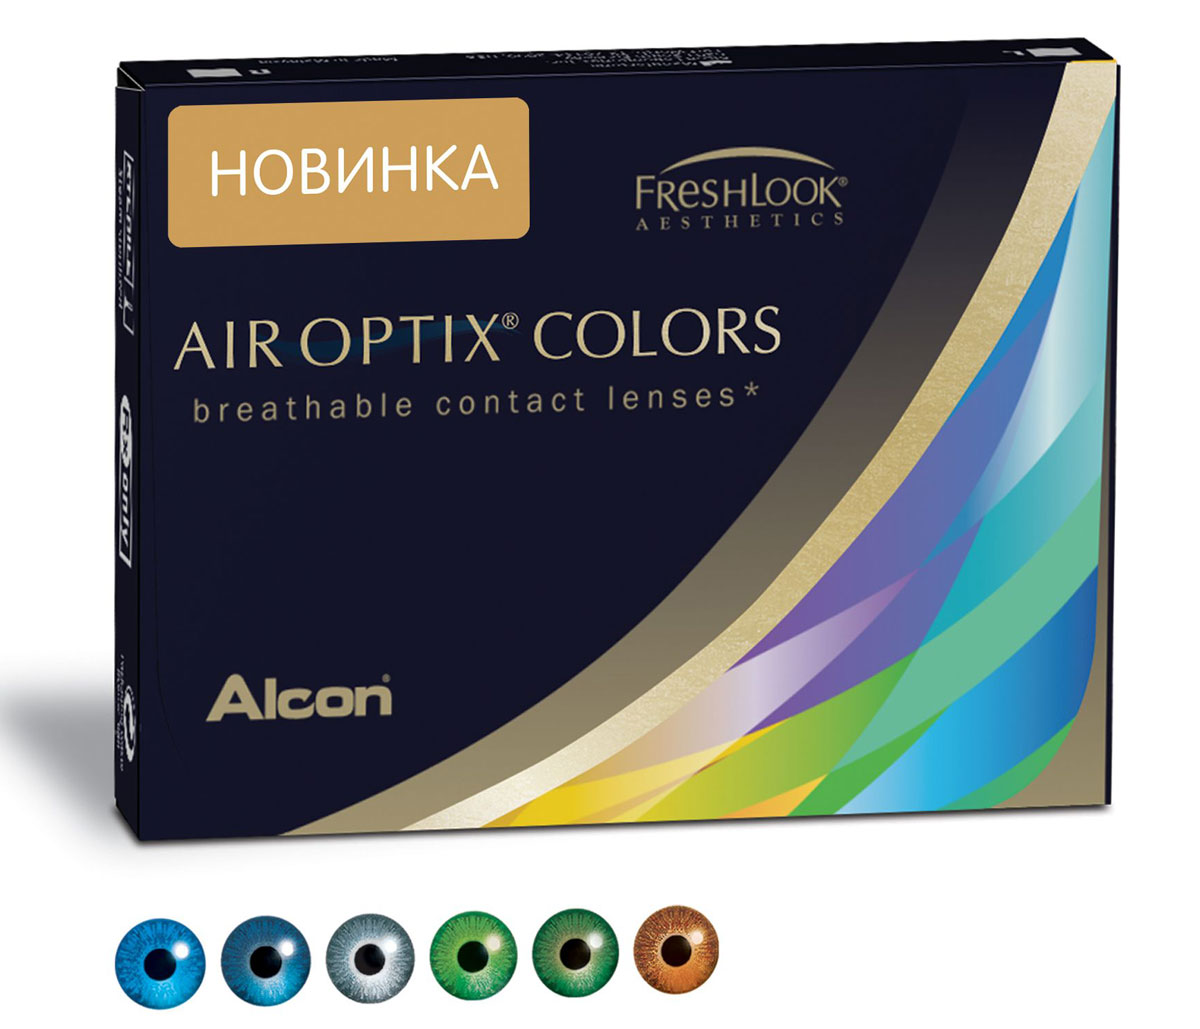 Аlcon контактные линзы Air Optix Colors 2 шт -1.50 Green